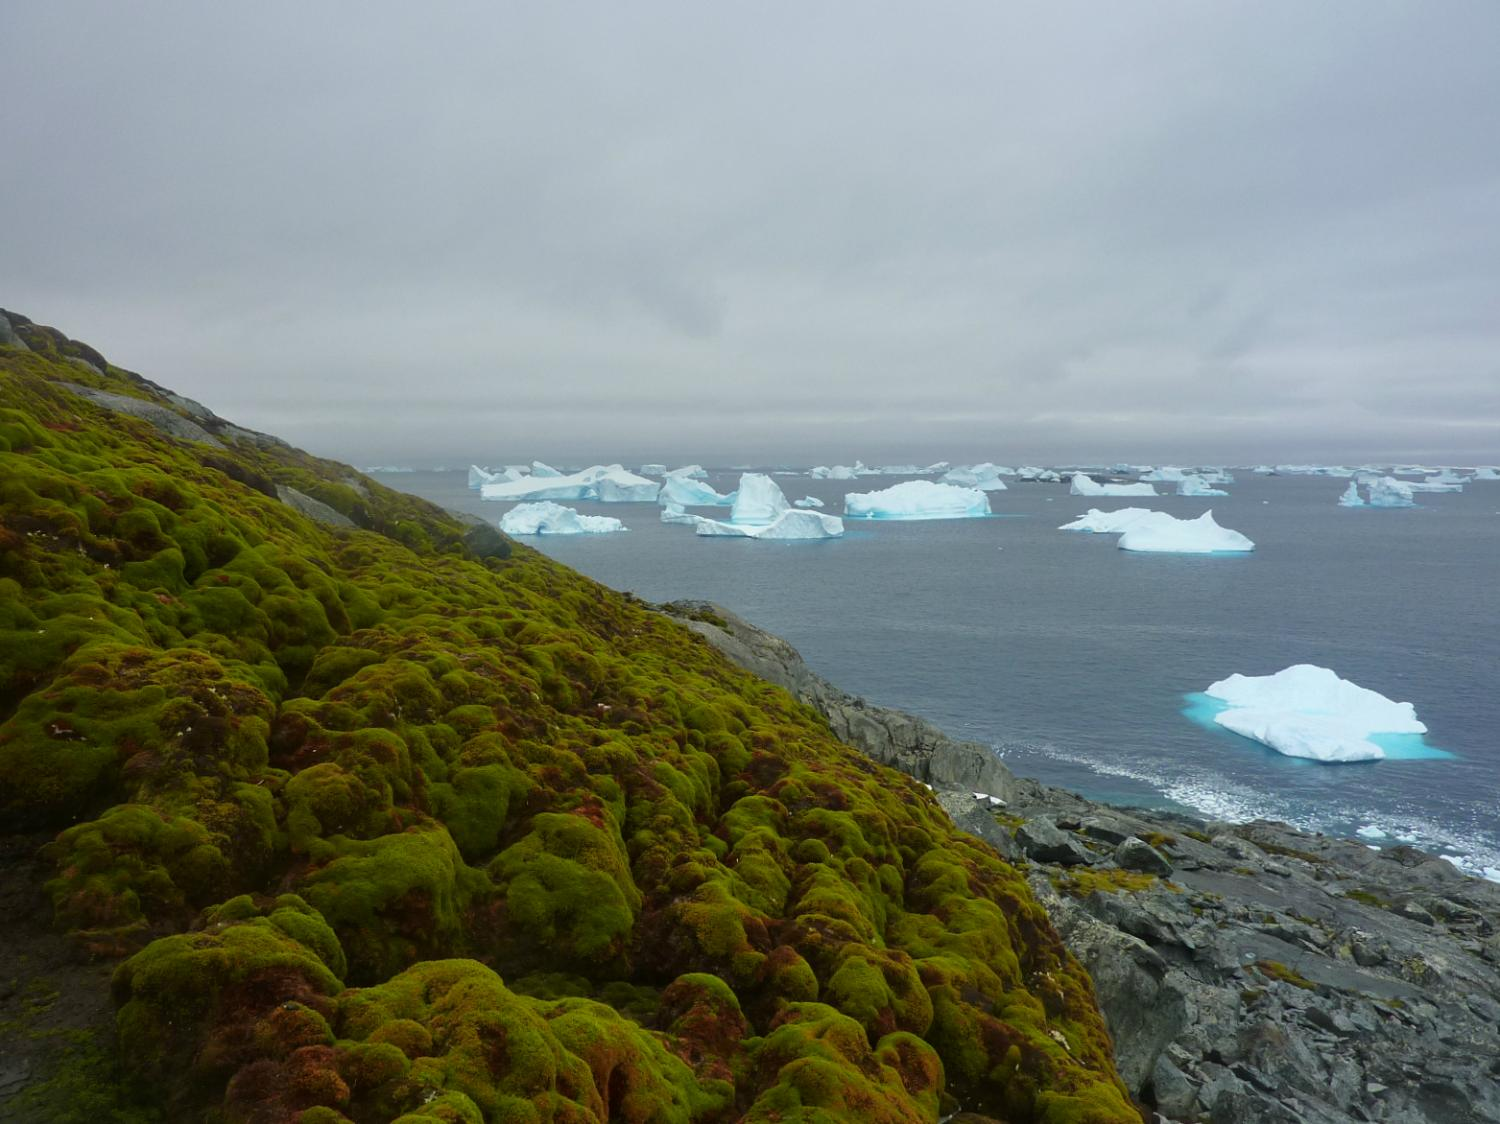 Antarctica'greening due to climate change